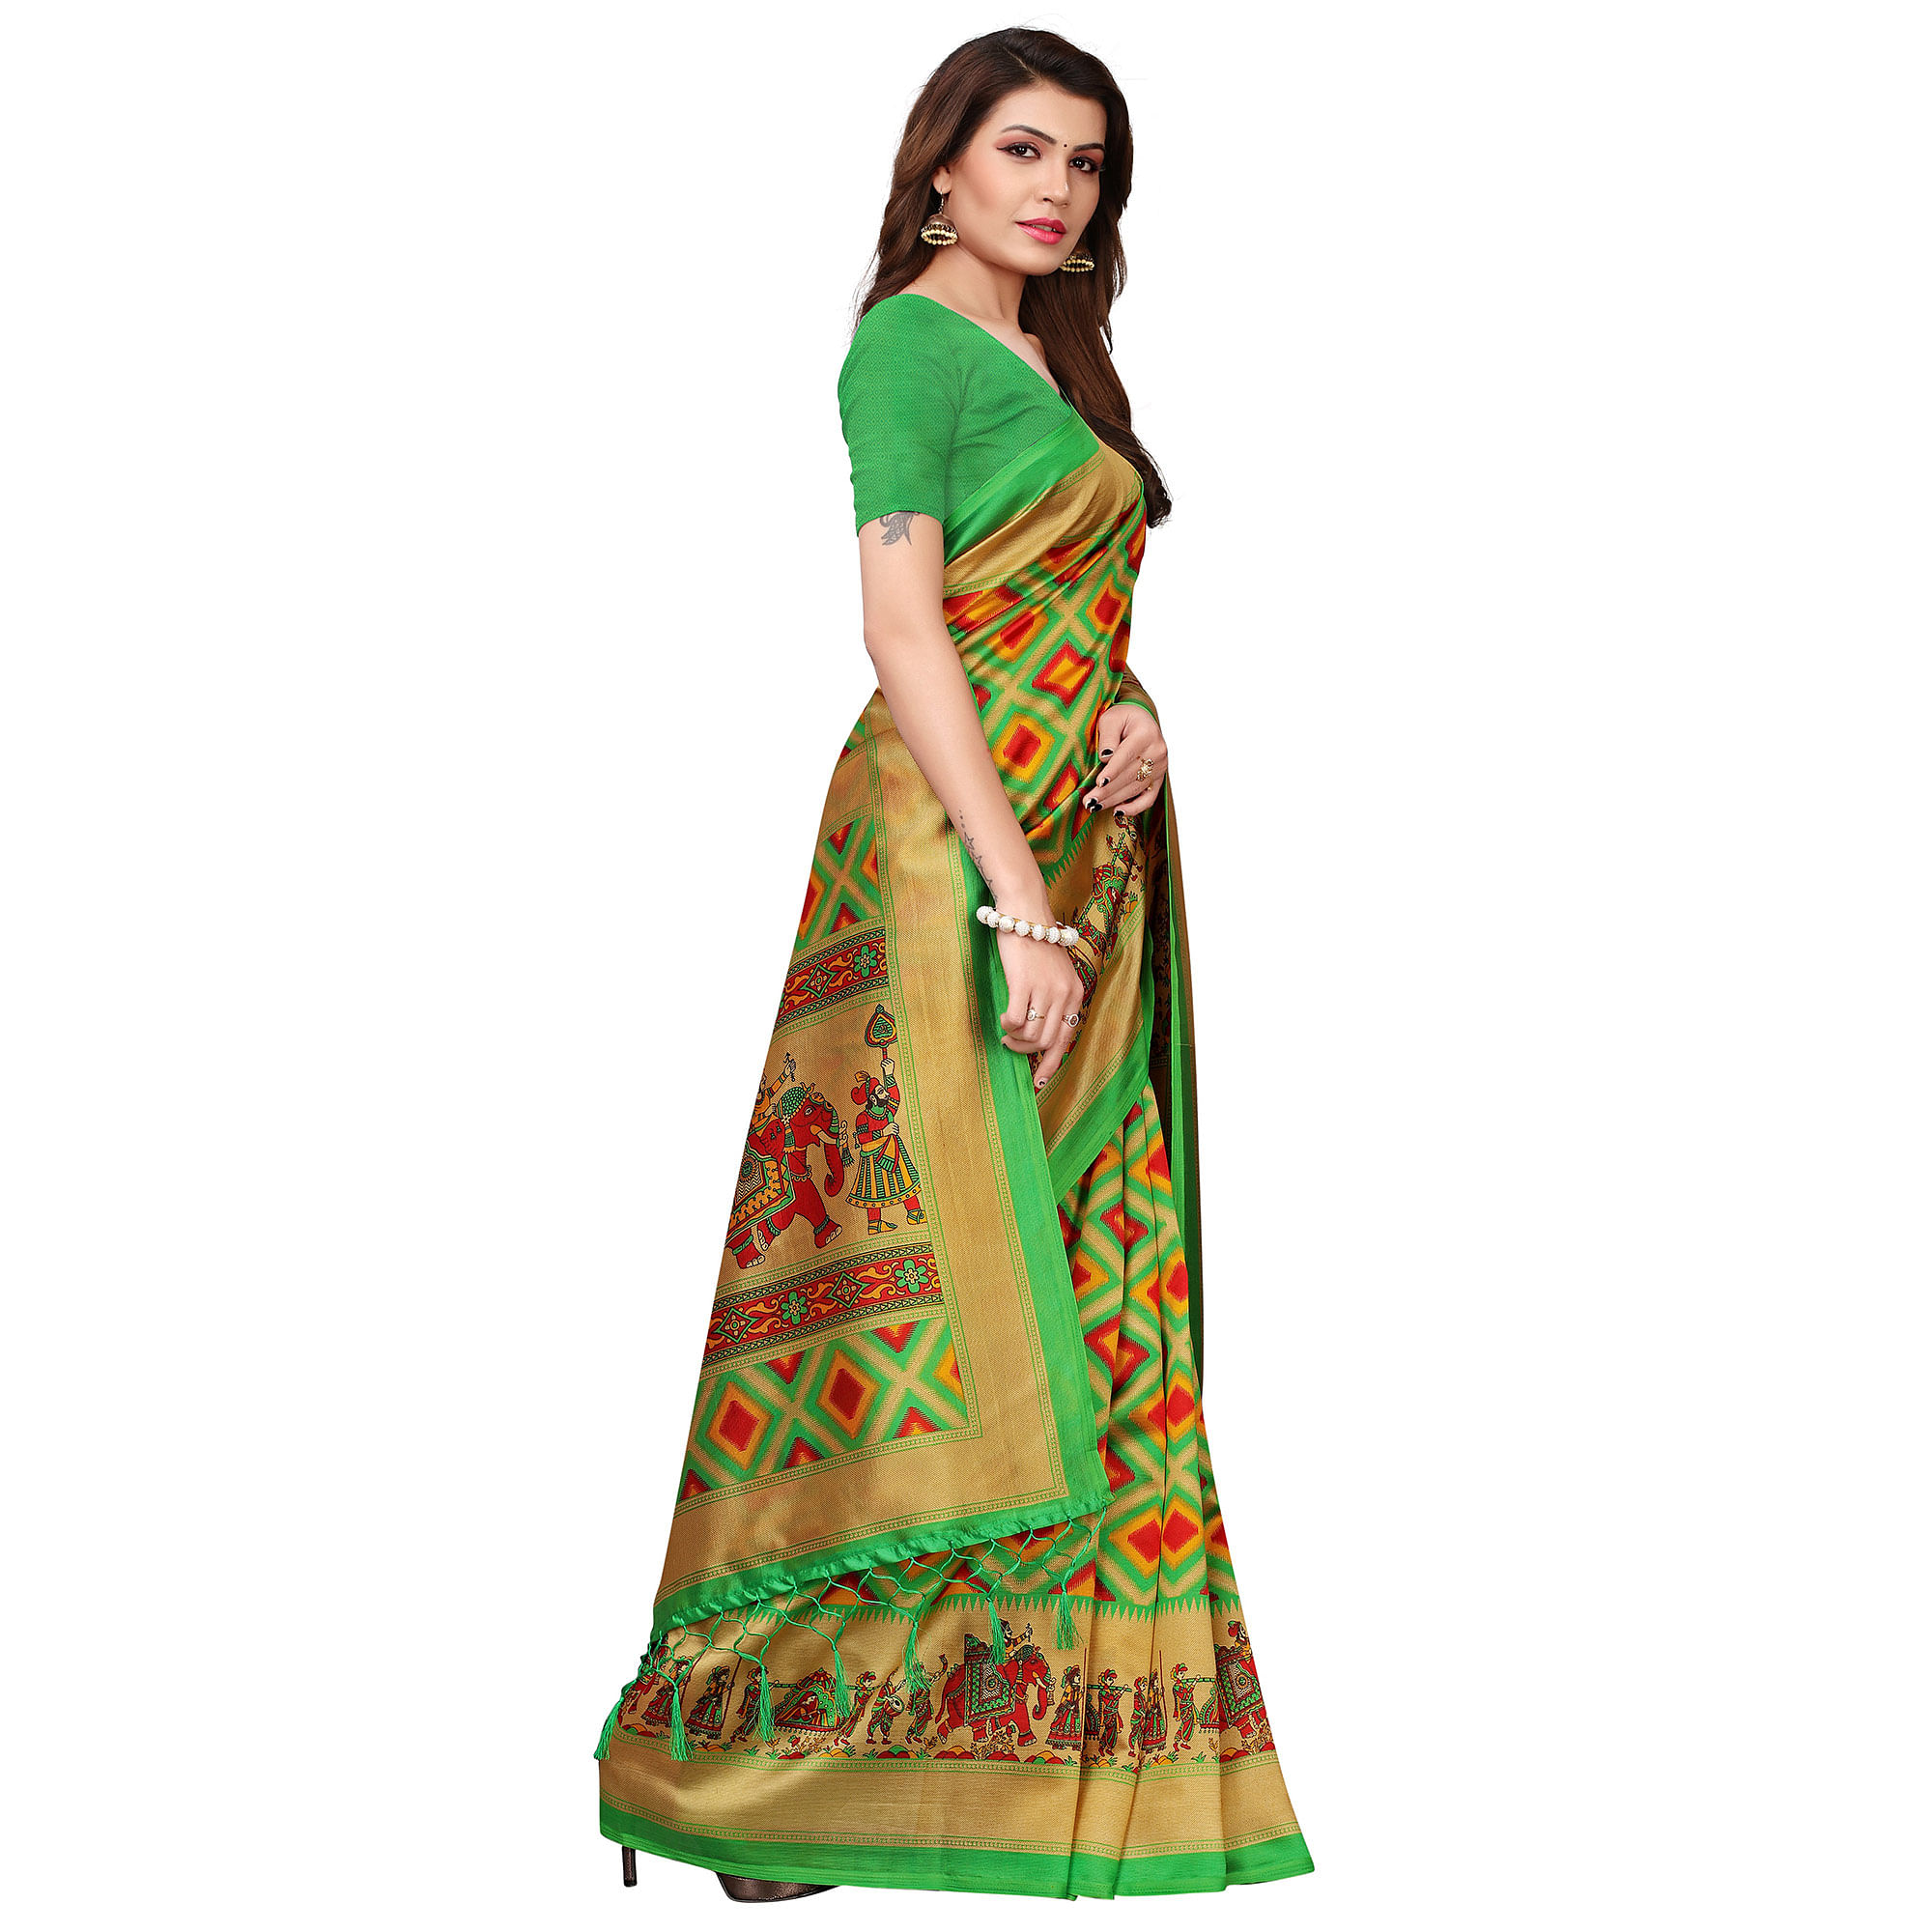 Glorious Green Colored Festive Wear Printed Art Silk Saree With Tassels